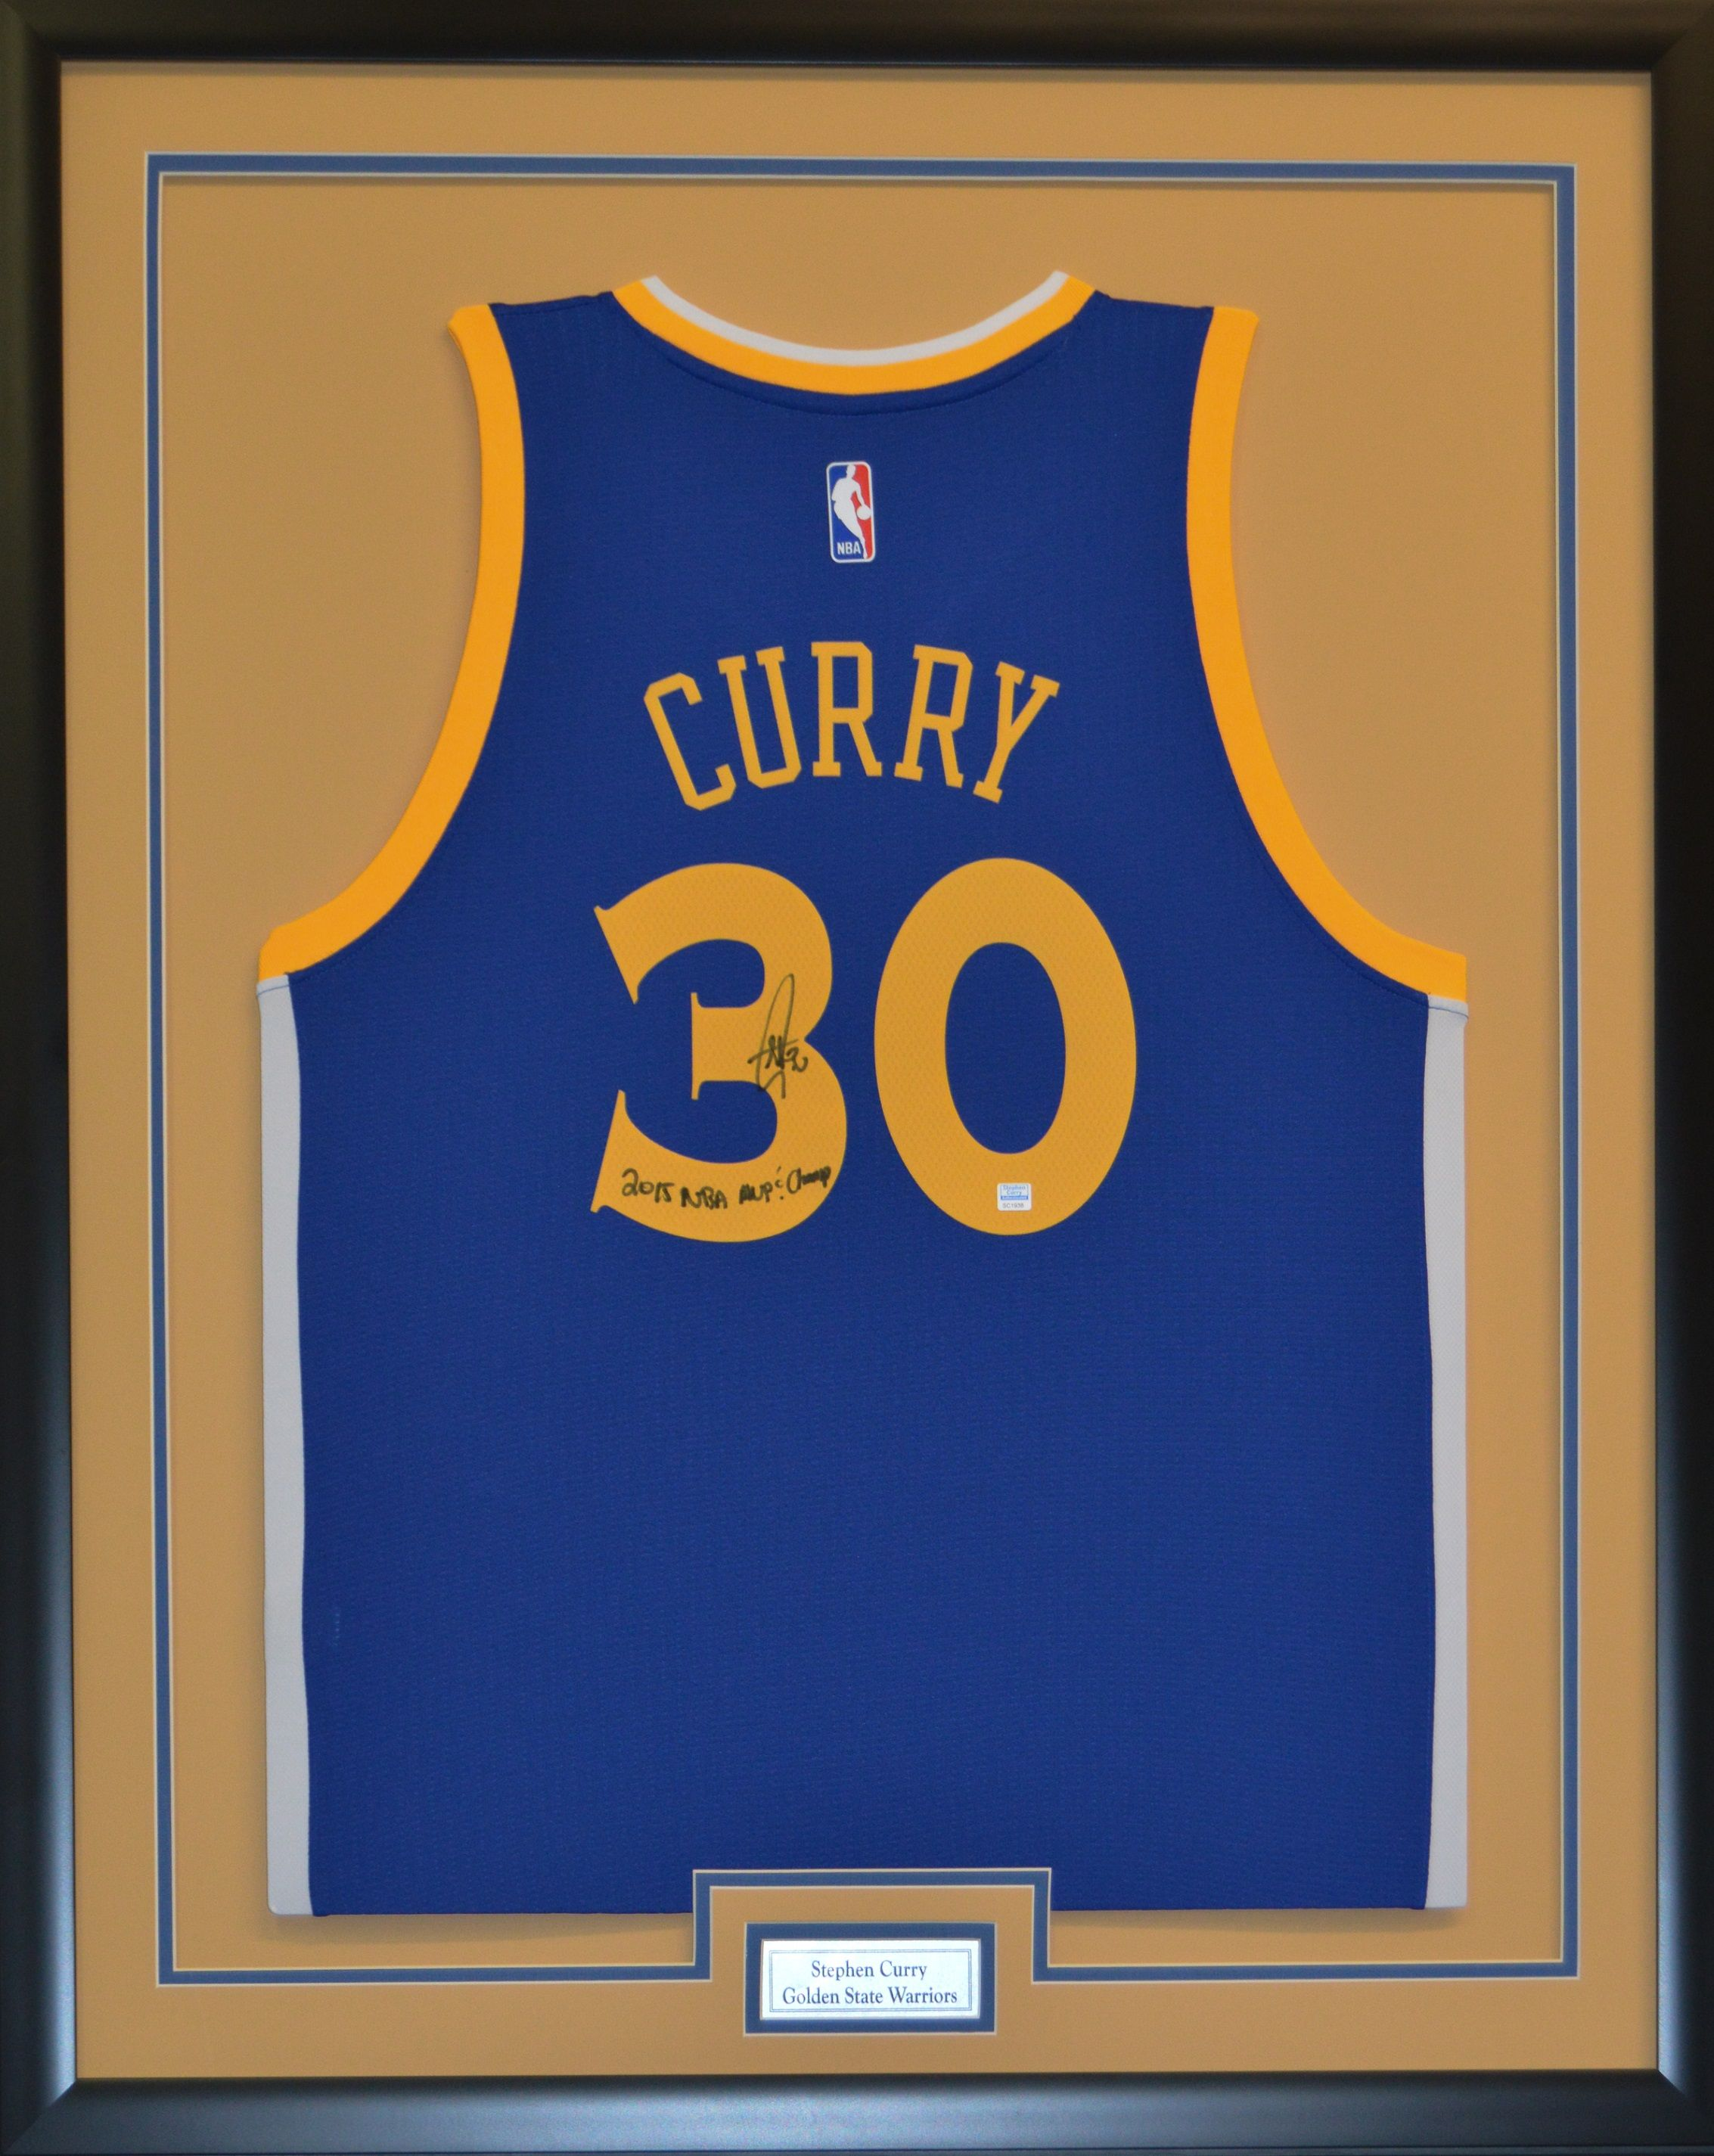 Framed Jersey of 2014 MVP StephCurry of the